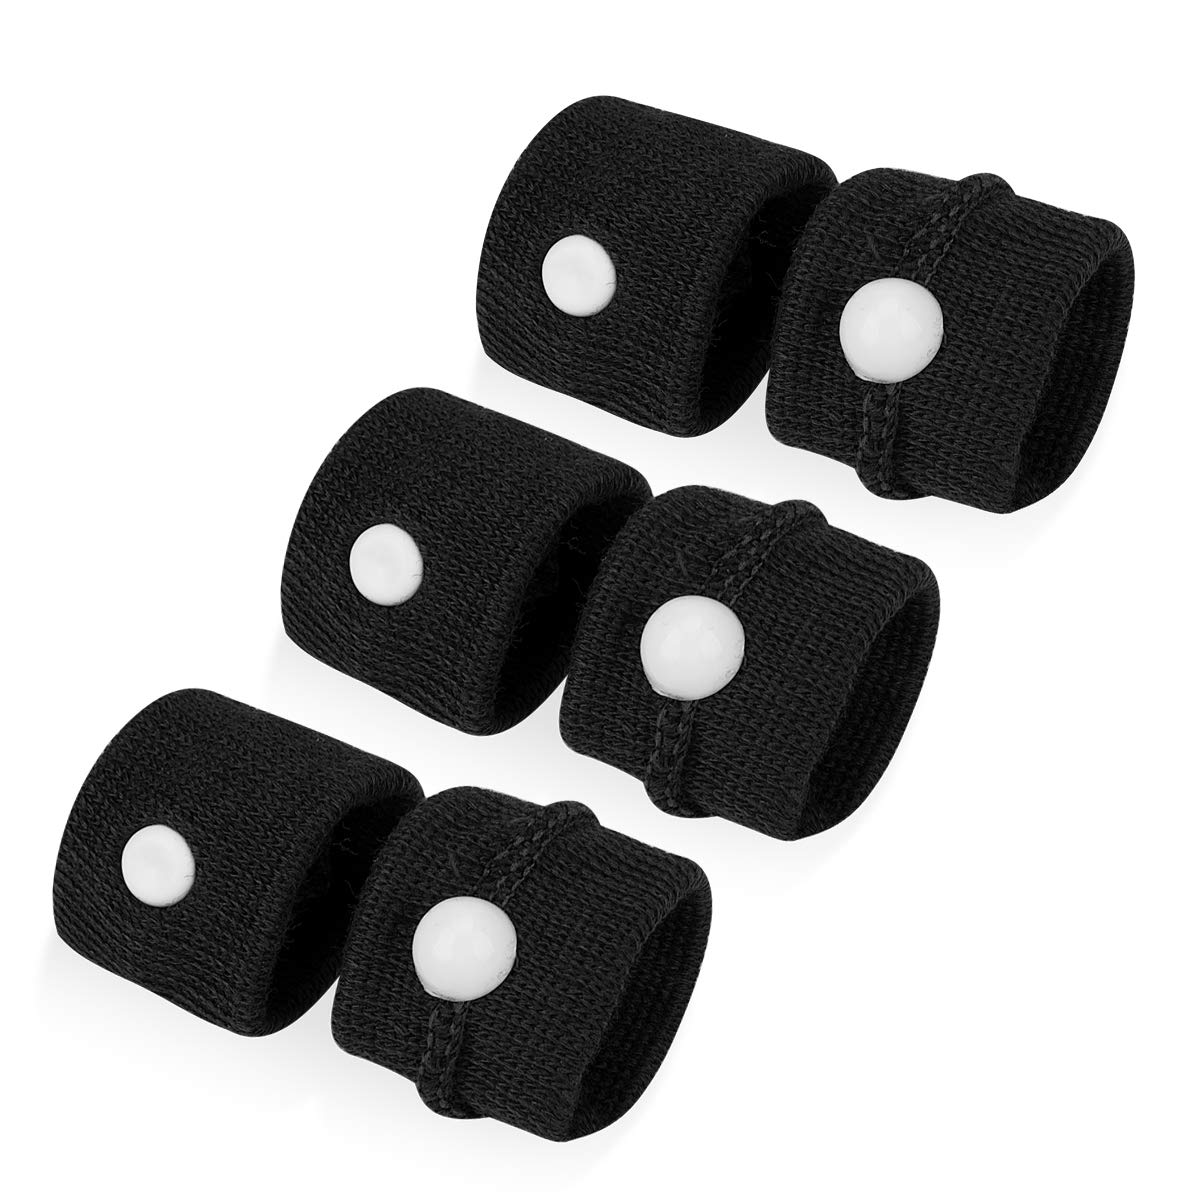 Hapdoo Wristbands for Morining Sickness Travel Motion Sick Car Flying Bus Sea 3 Pairs Black Adults Anit-Nausea Relief